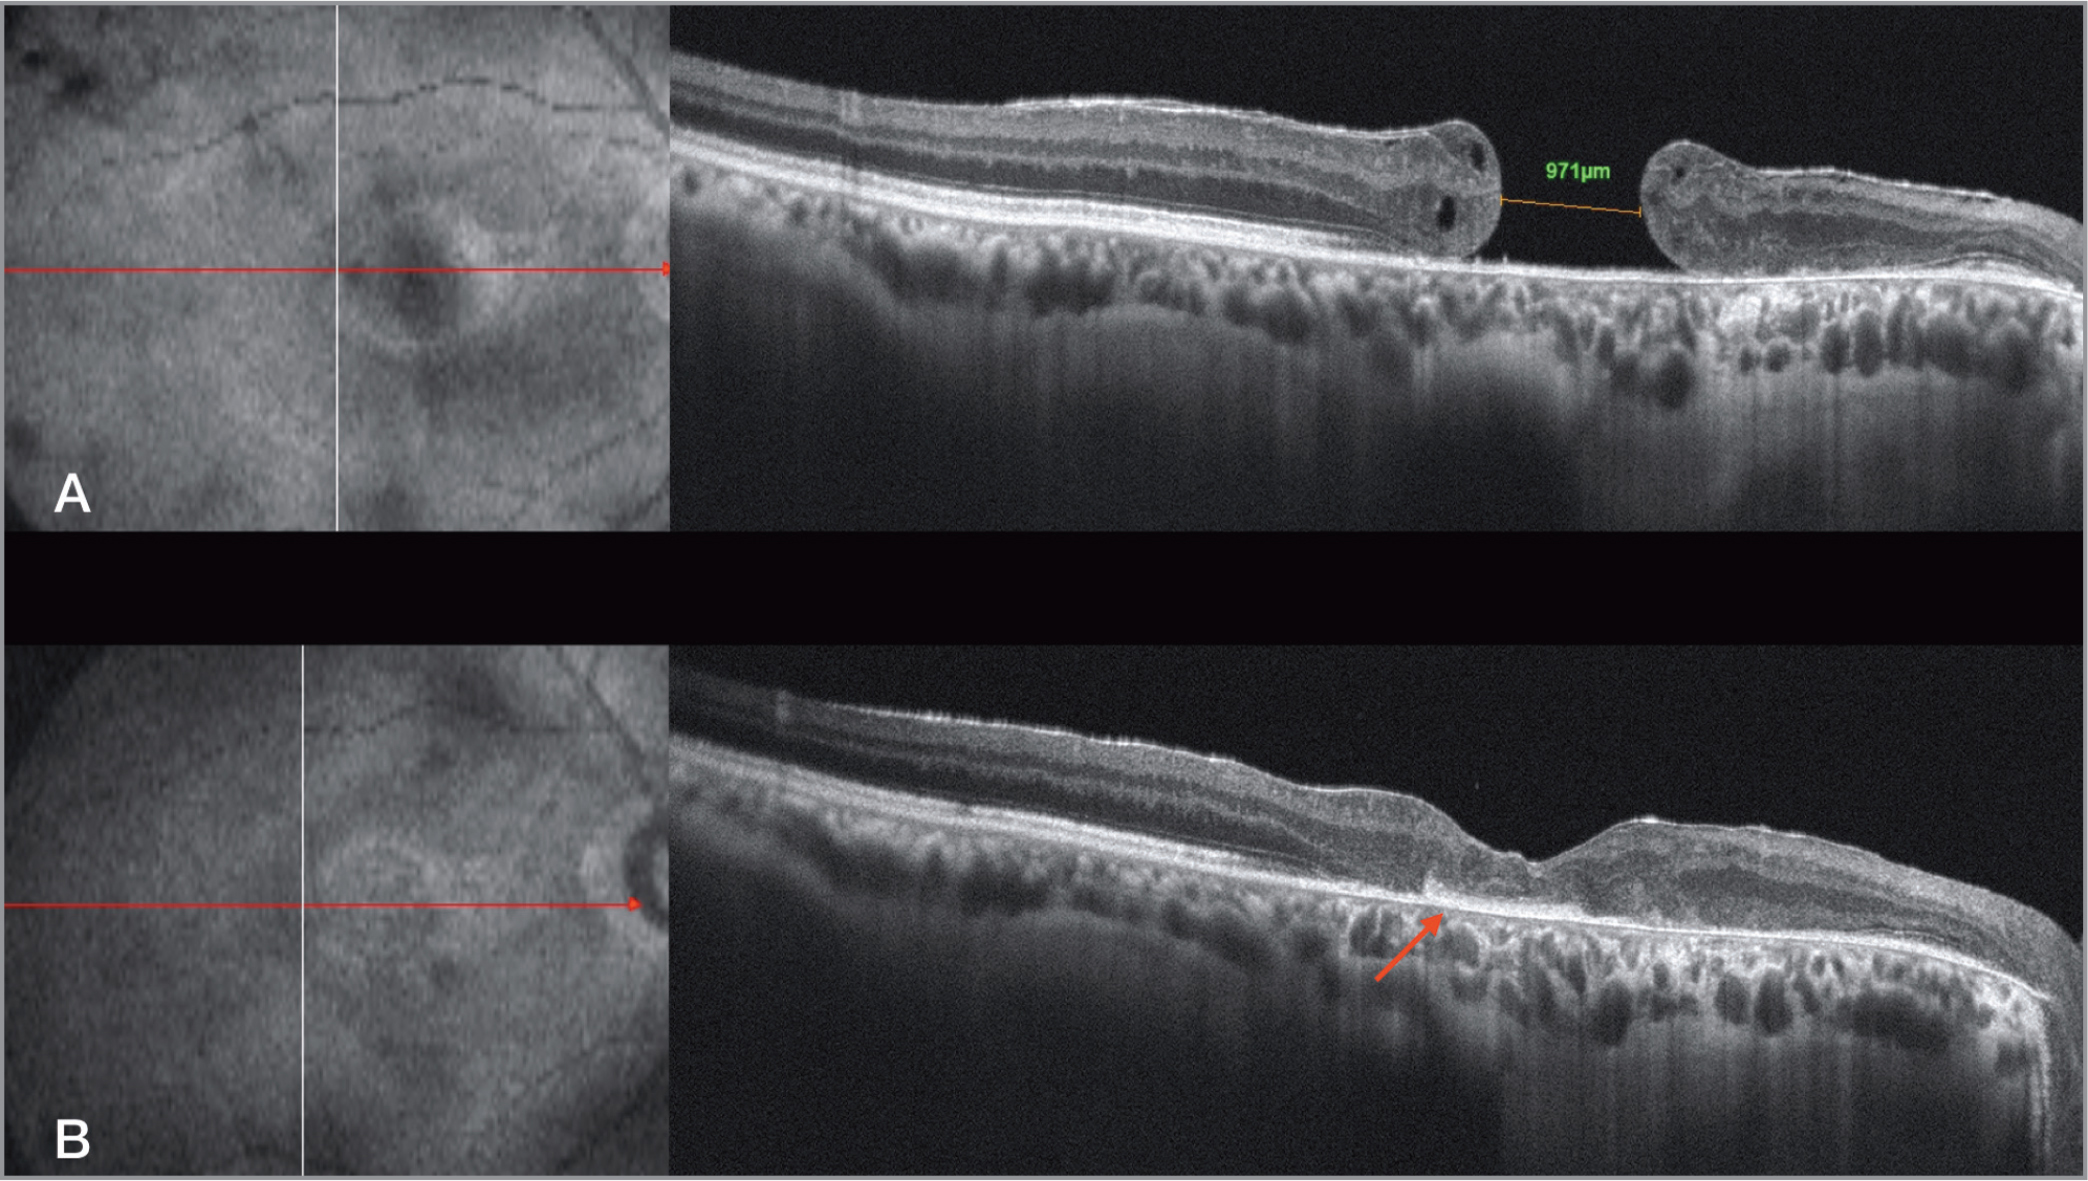 Optical coherence tomography (OCT) shows chronic post-traumatic macular hole (MH) with flat margin and an epiretinal membrane. The caliper indicates the internal dimension of the MH (A). Three-month OCT showing amniotic membrane plug (red arrow) well positioned under the retina and complete closure of the MH (B).